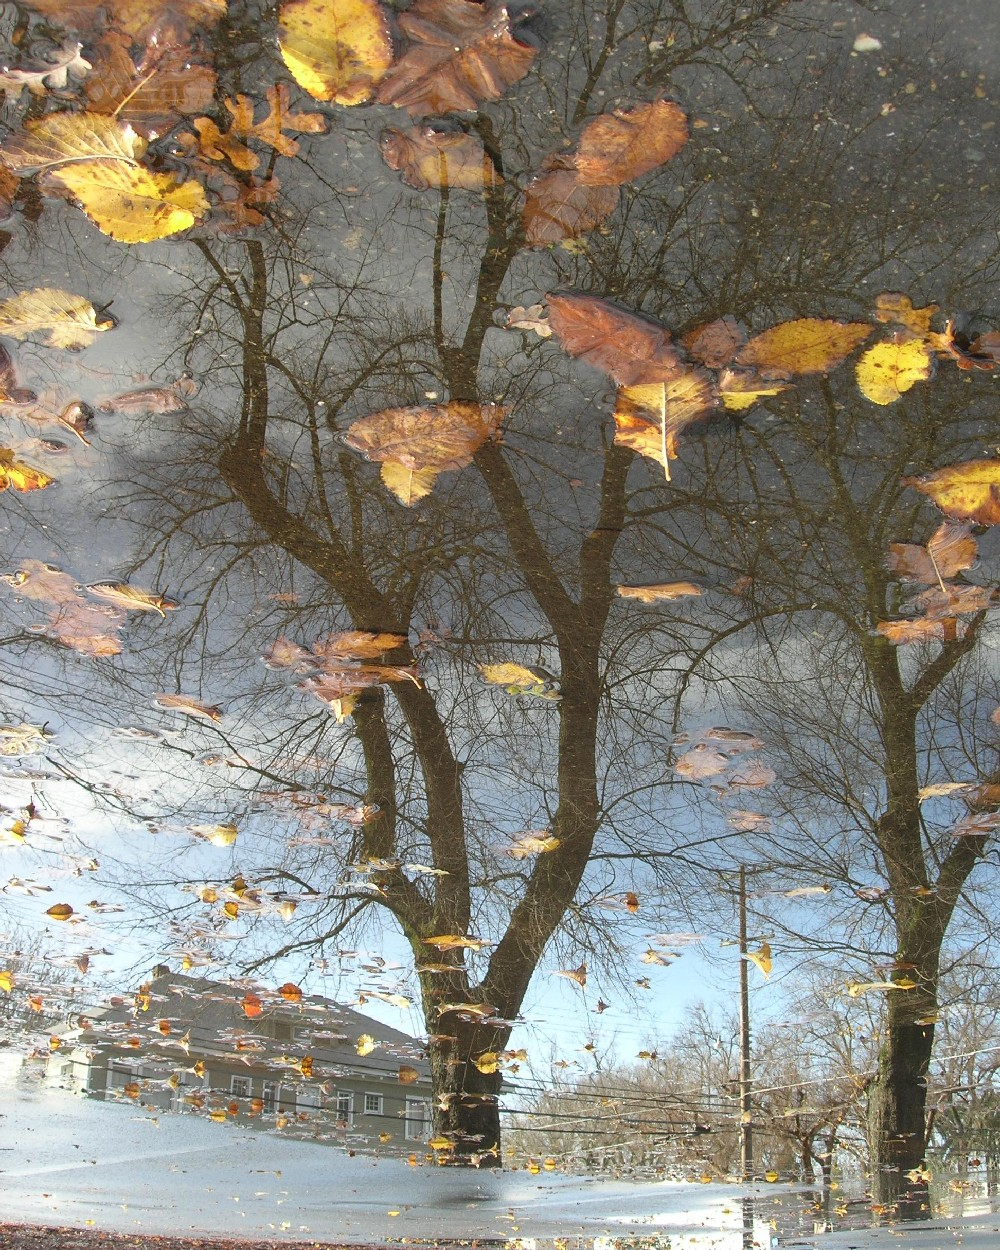 tree reflection with yellow leaves author dreizle dreizler bob